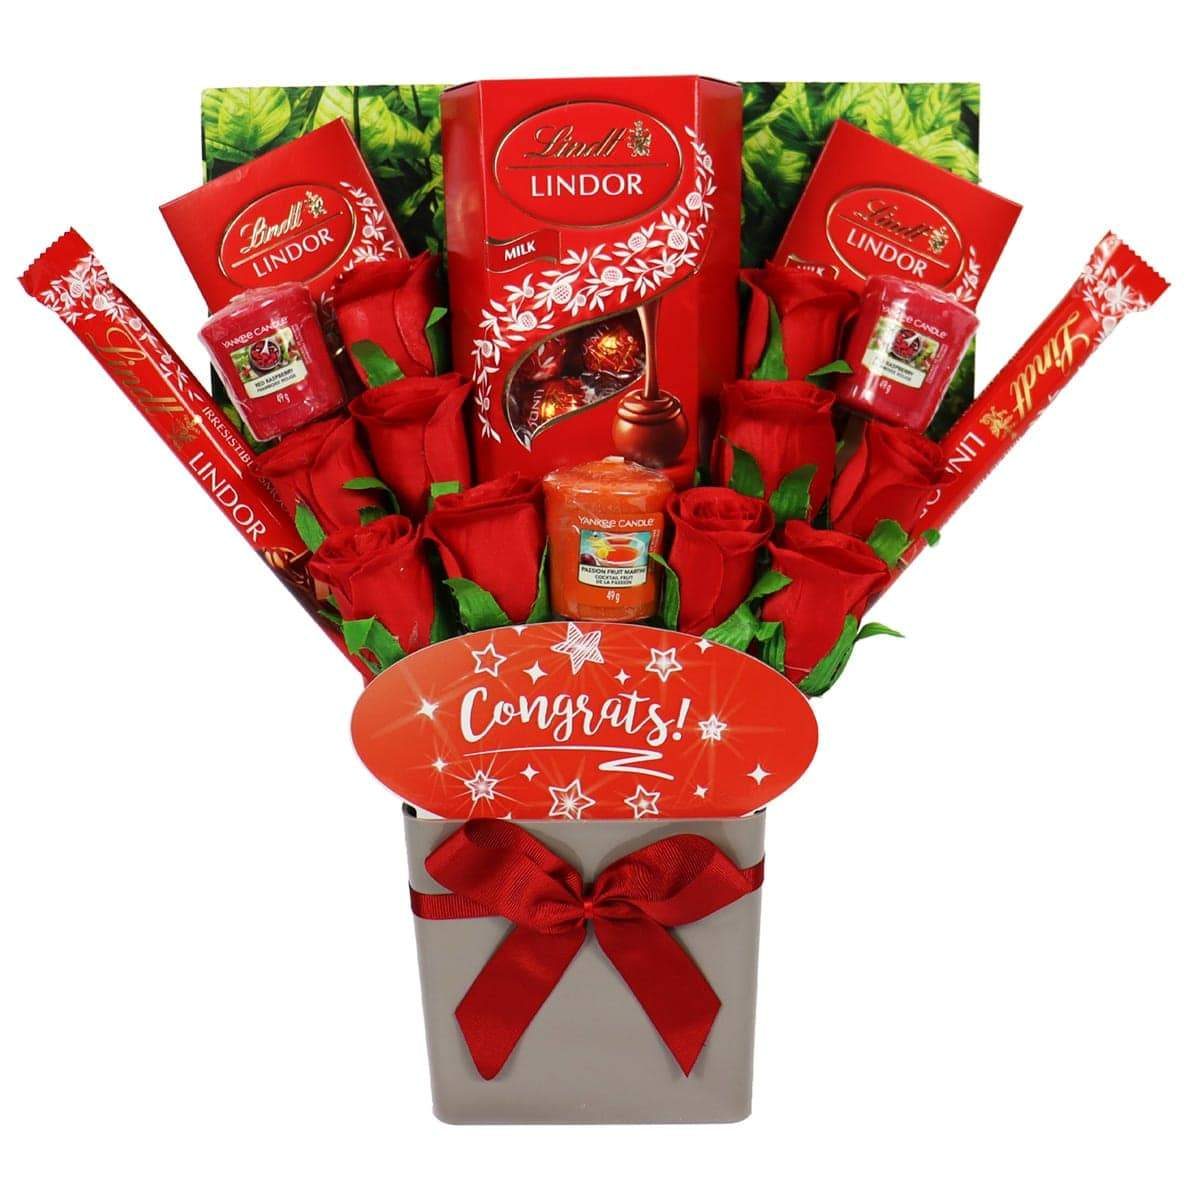 The Congrats Yankee Candle and Red Rose Bouquet